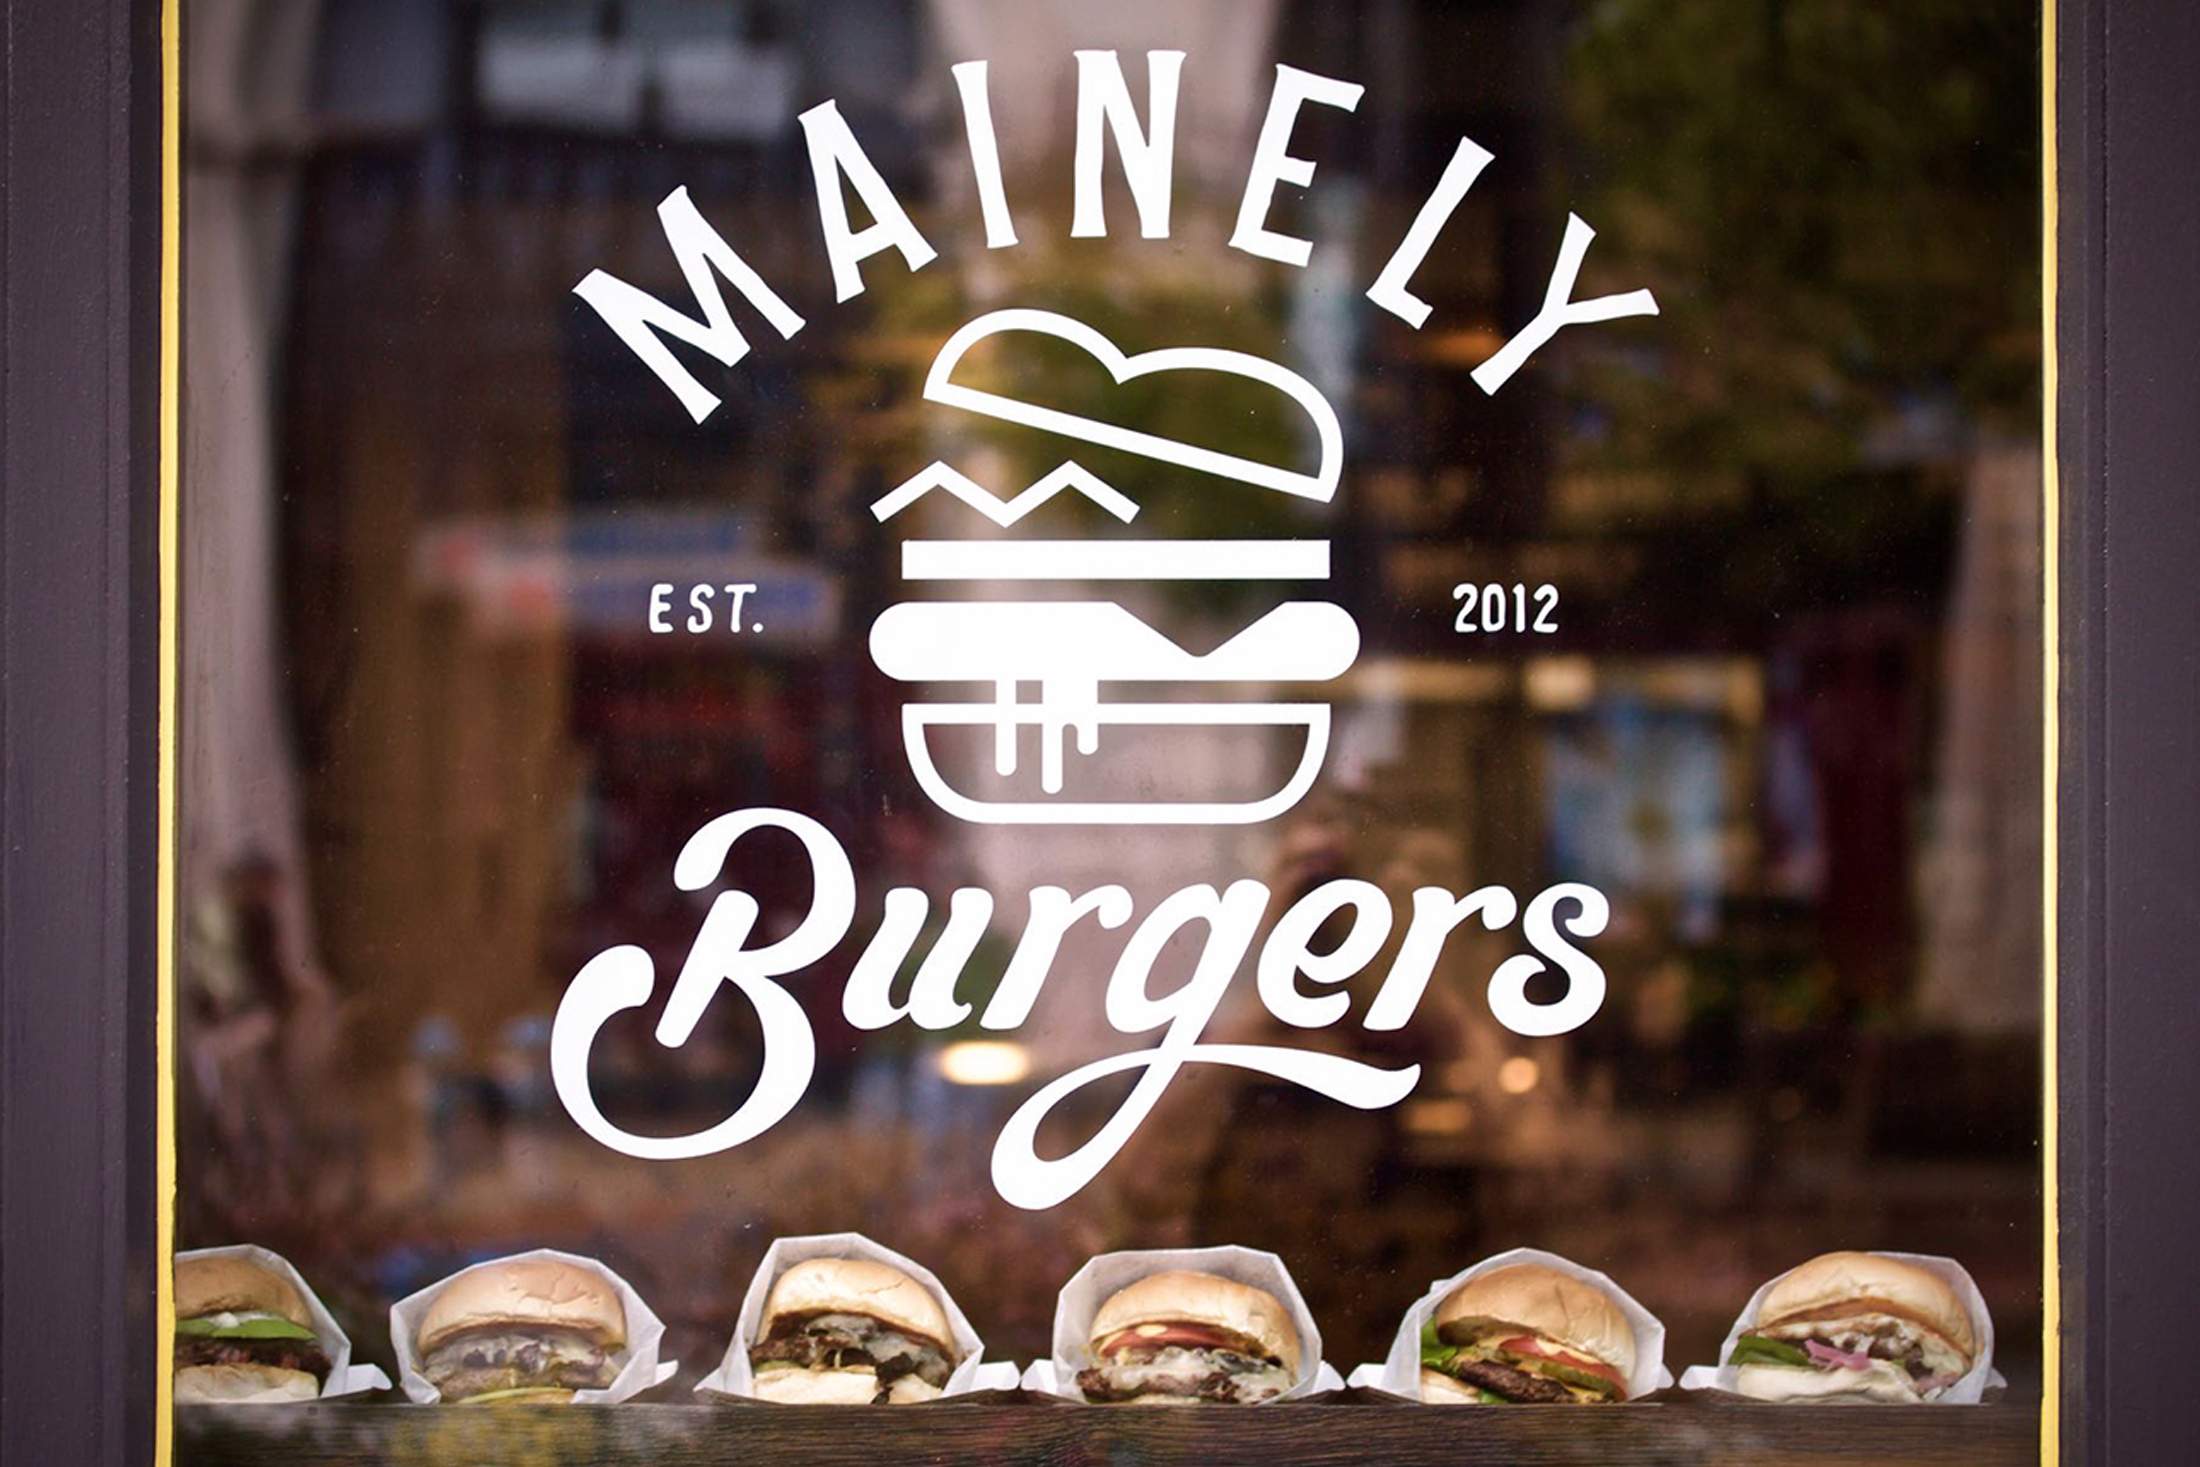 Mainely-Burgers-burger-window.jpg